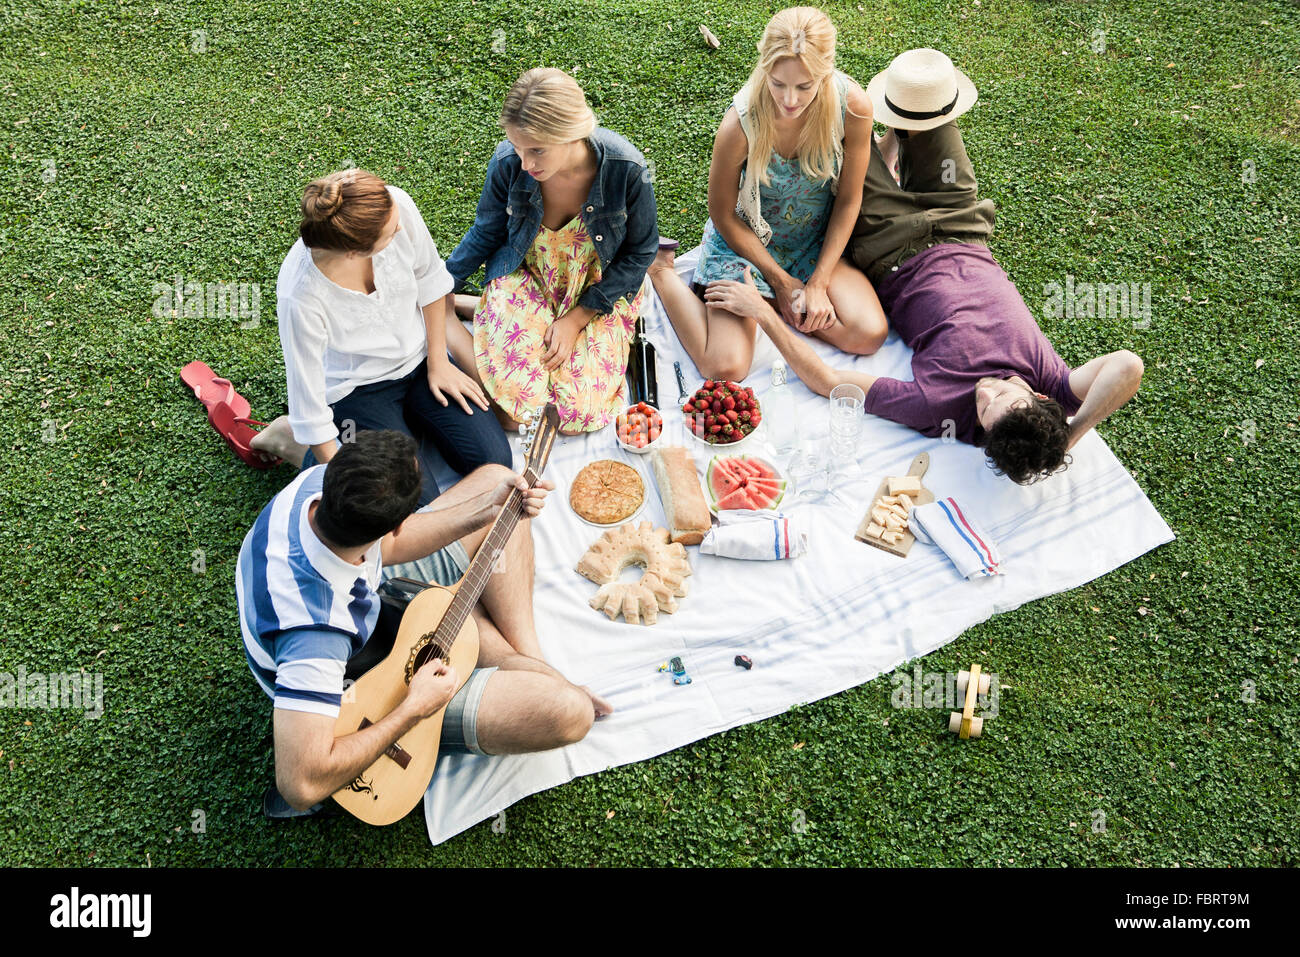 58852c1dd16d Summer picnic in the park with friends Stock Photo  93337040 - Alamy